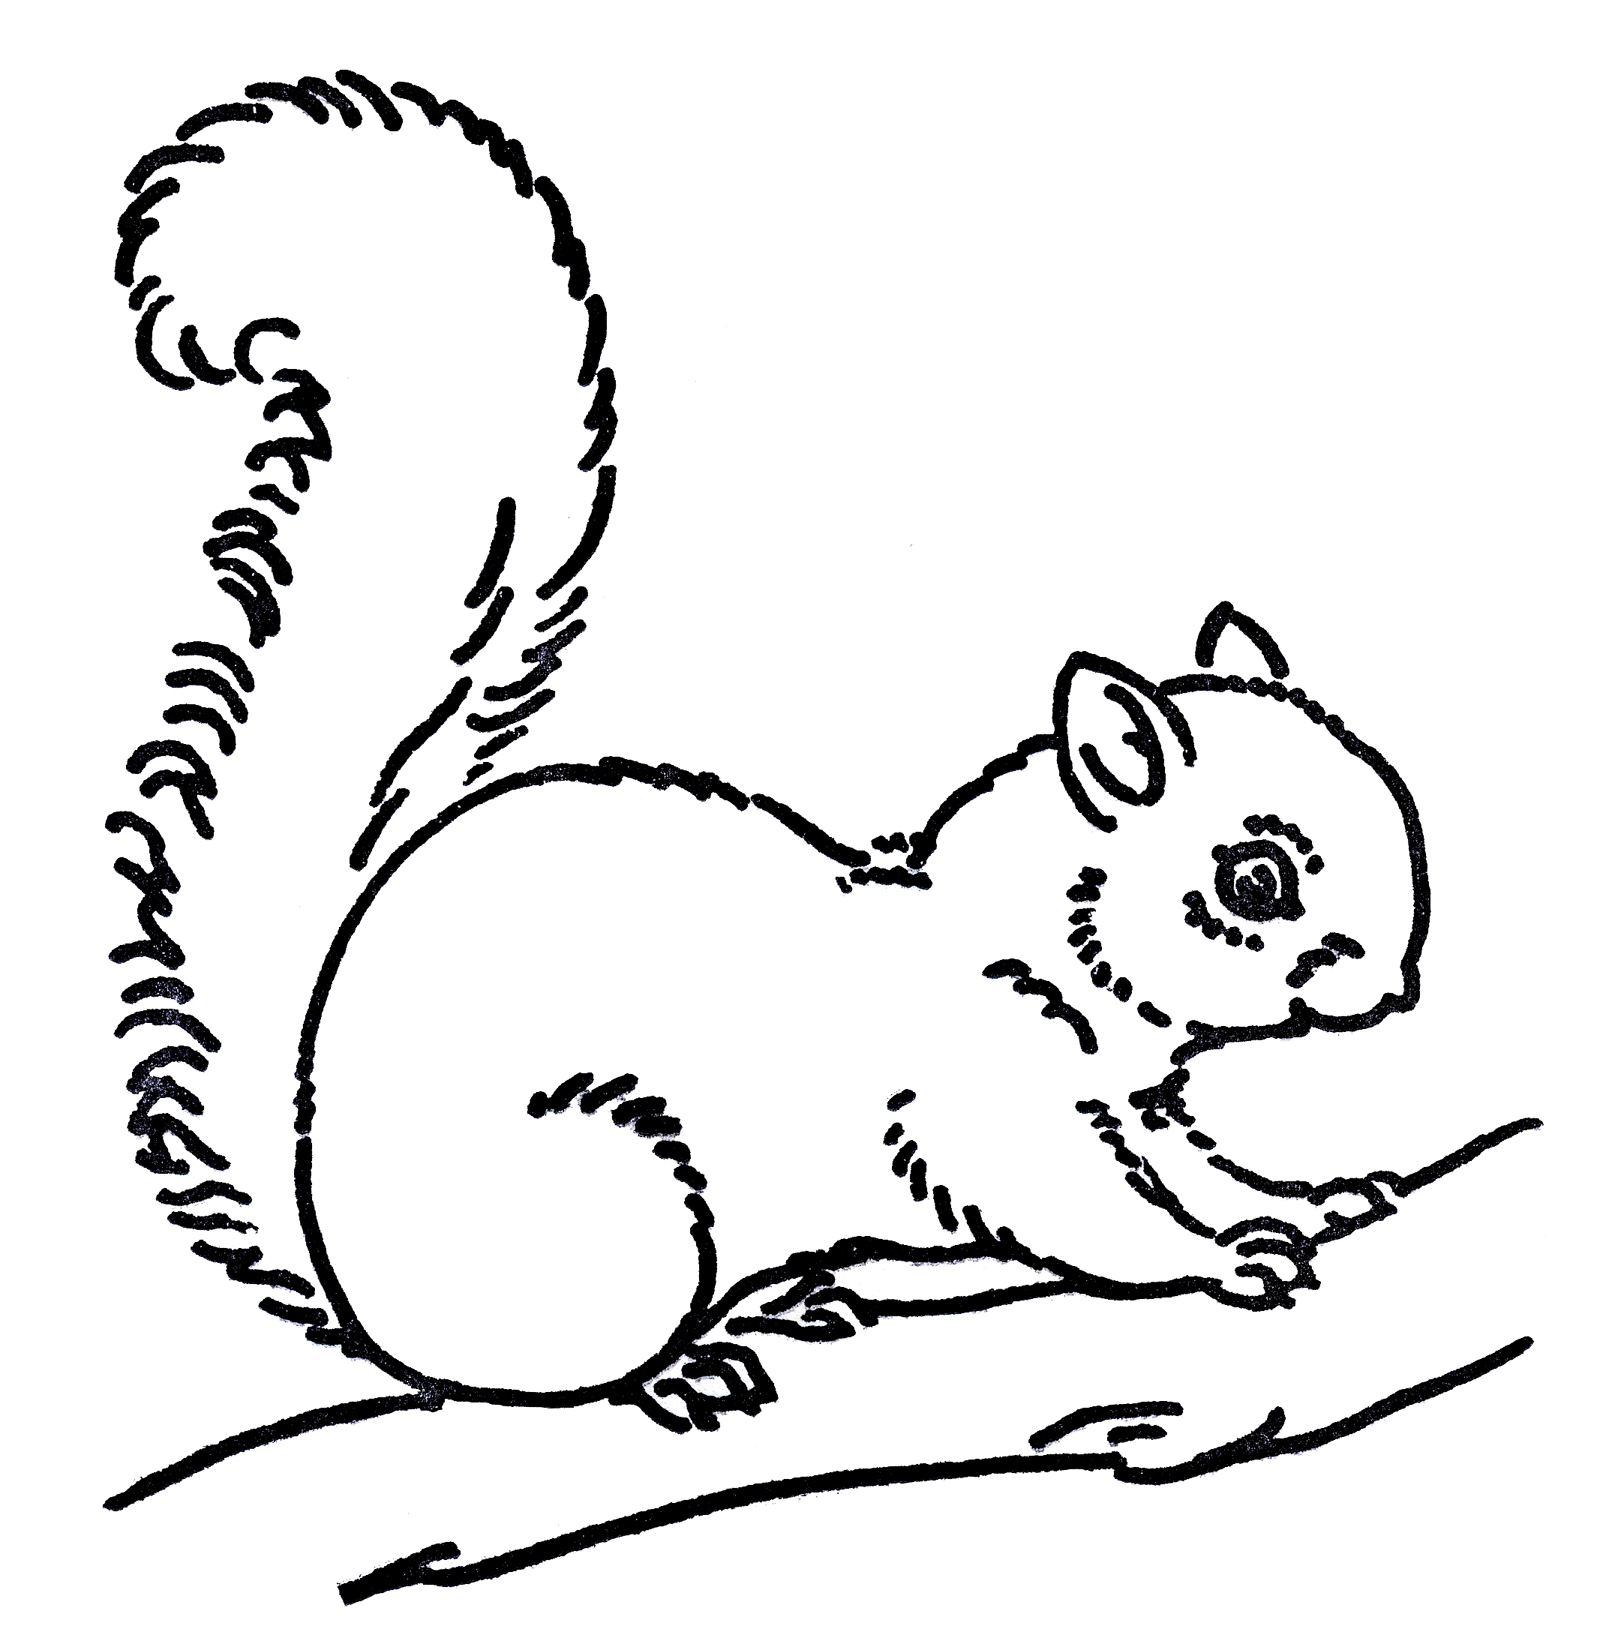 Line Drawing Pictures : Free line art images squirrel drawings the graphics fairy